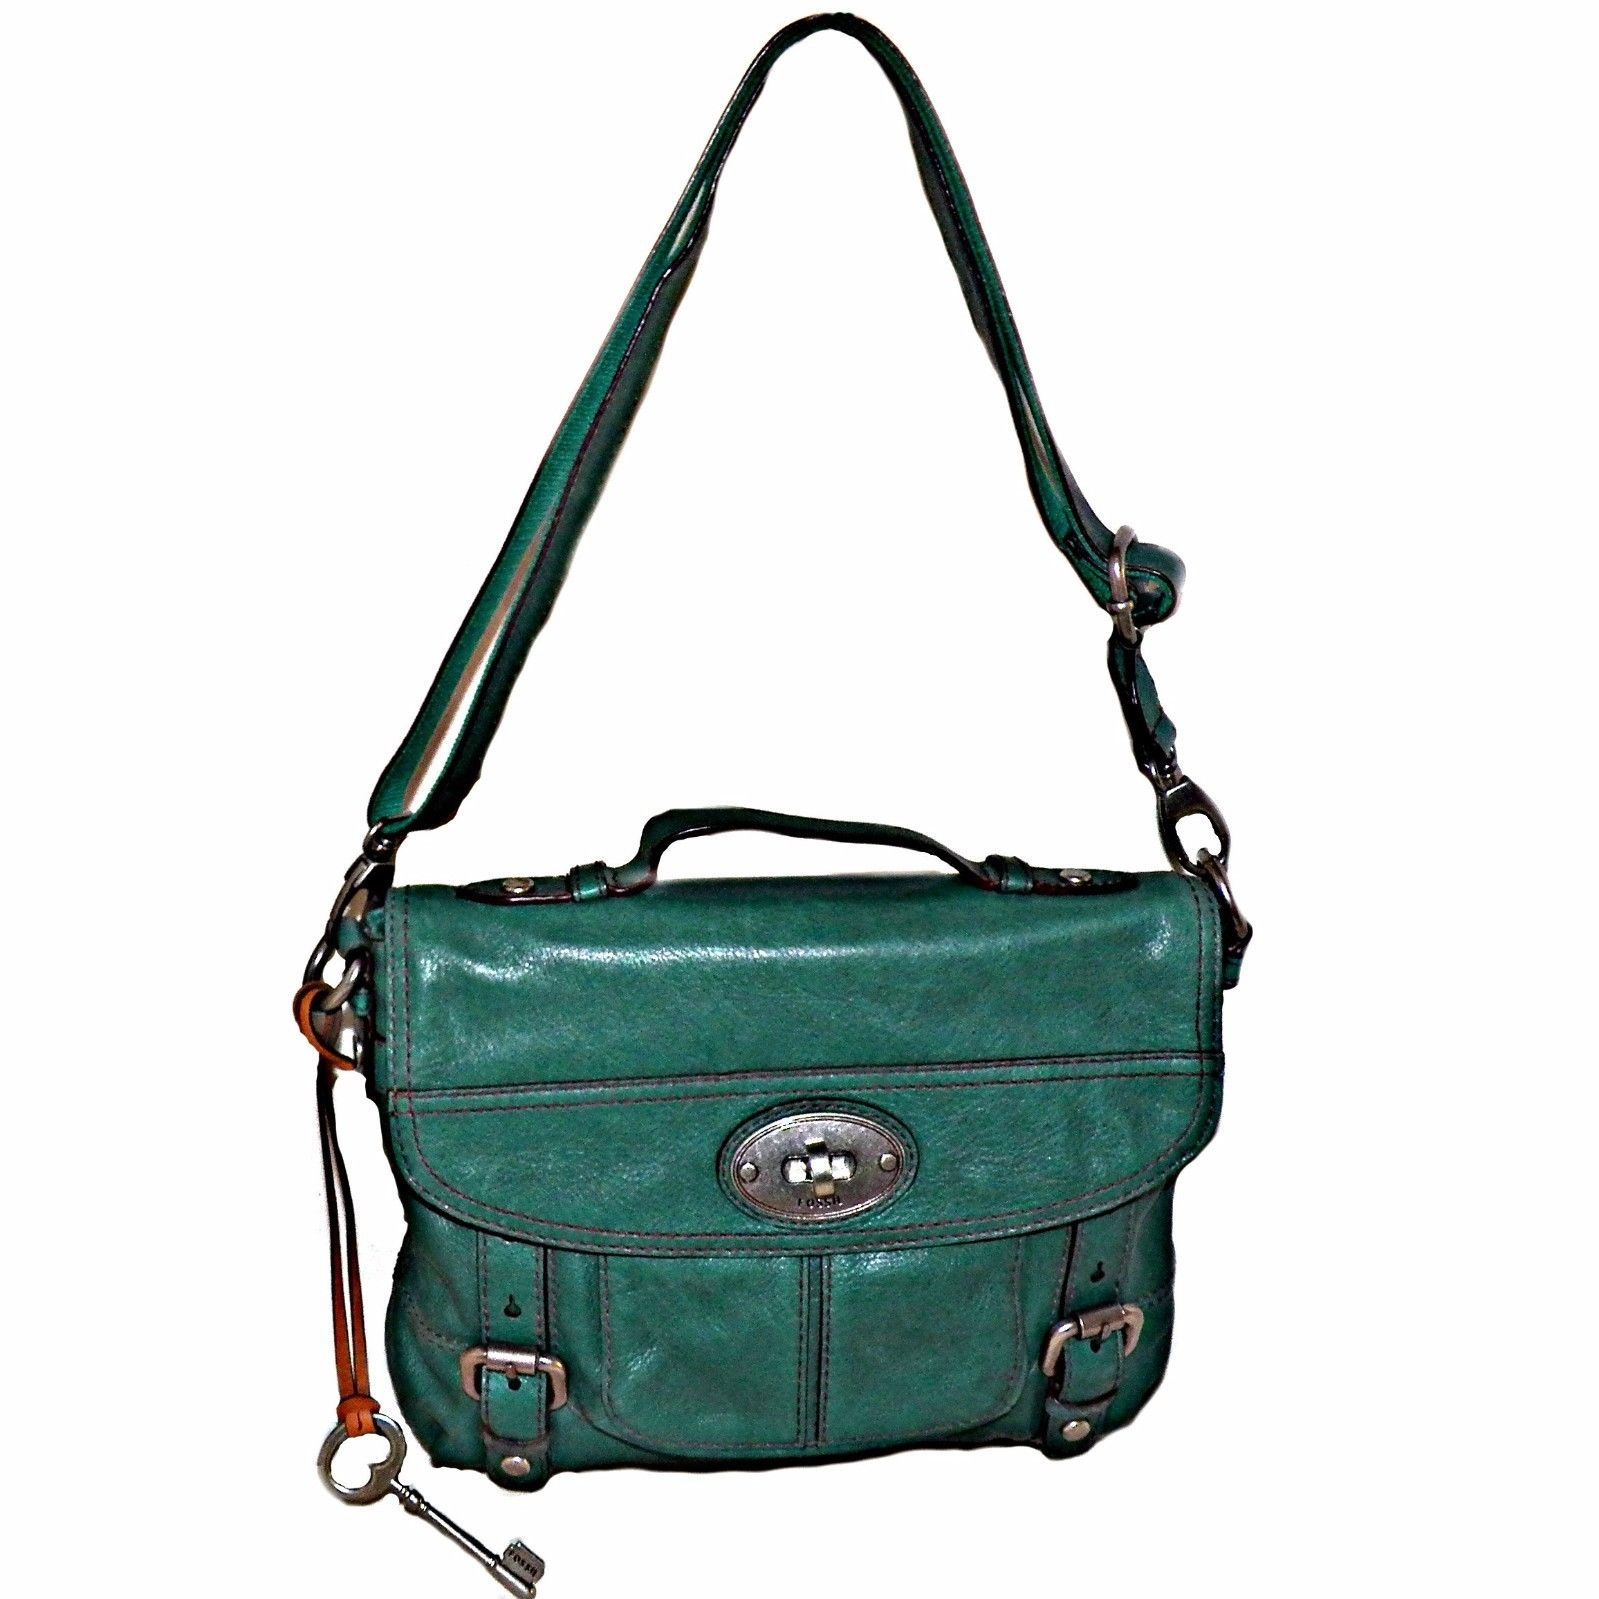 23965bb3f321 57. 57. Previous. Fossil Green Distressed Leather Maddox Messenger Crossbody  Satchel Bag ZB5032